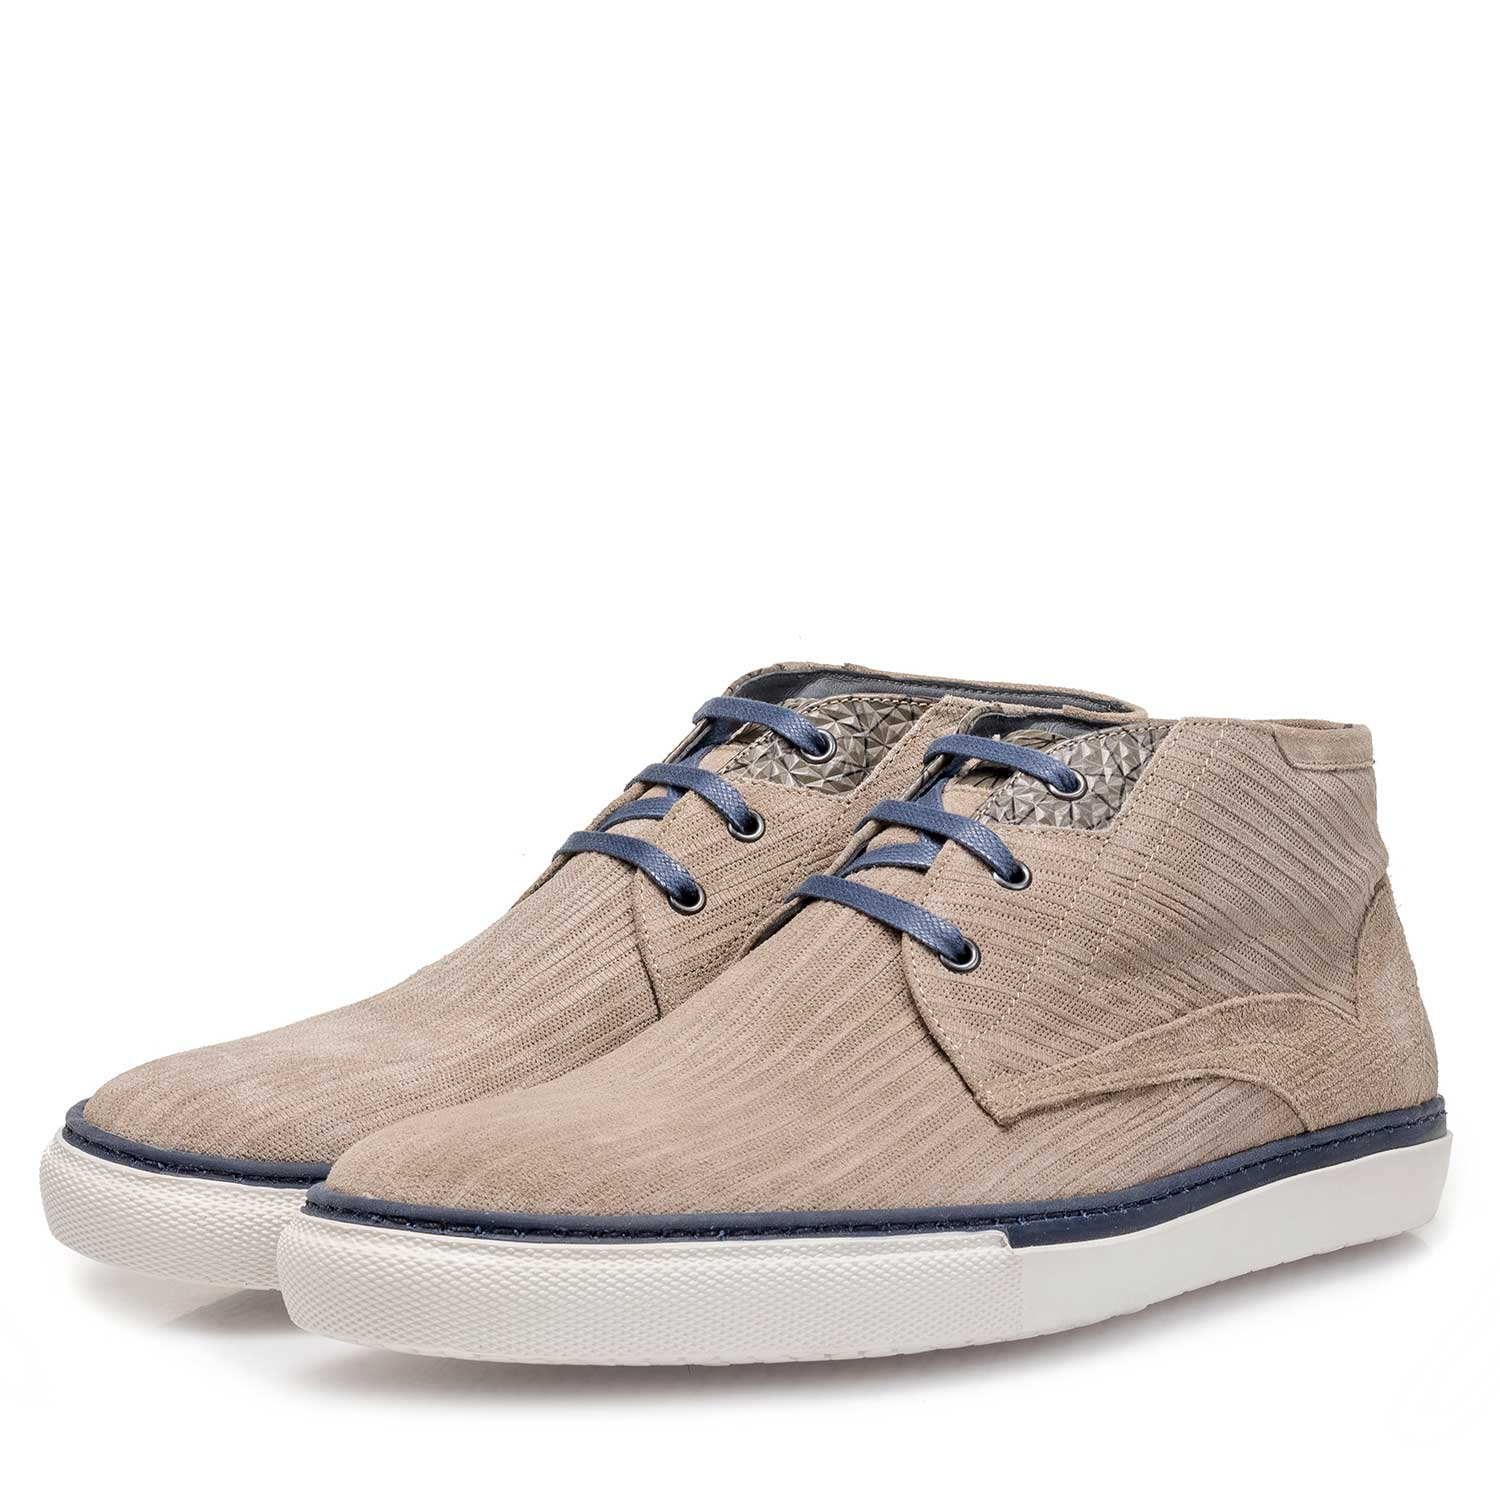 10079/07 - Taupe-coloured calf suede leather lace shoe